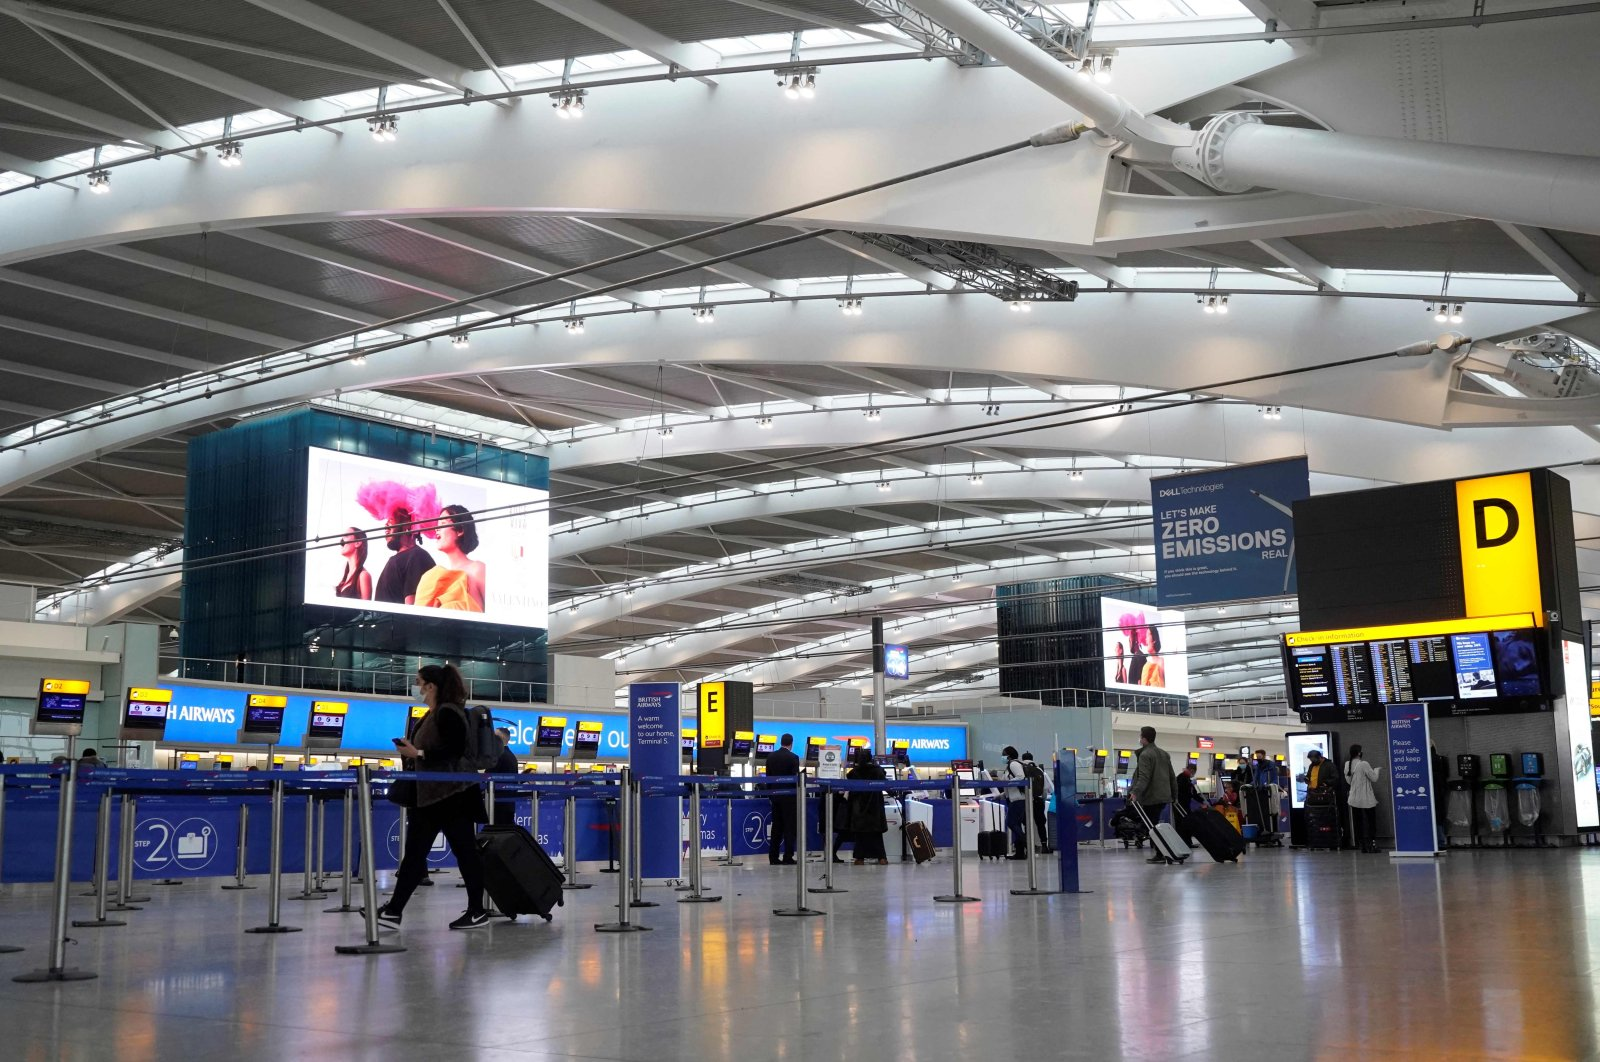 Travelers wearing face coverings walk with their luggage in the almost deserted departures hall at Terminal 5 of Heathrow Airport in west London, U.K., Dec. 21, 2020. (AFP Photo)